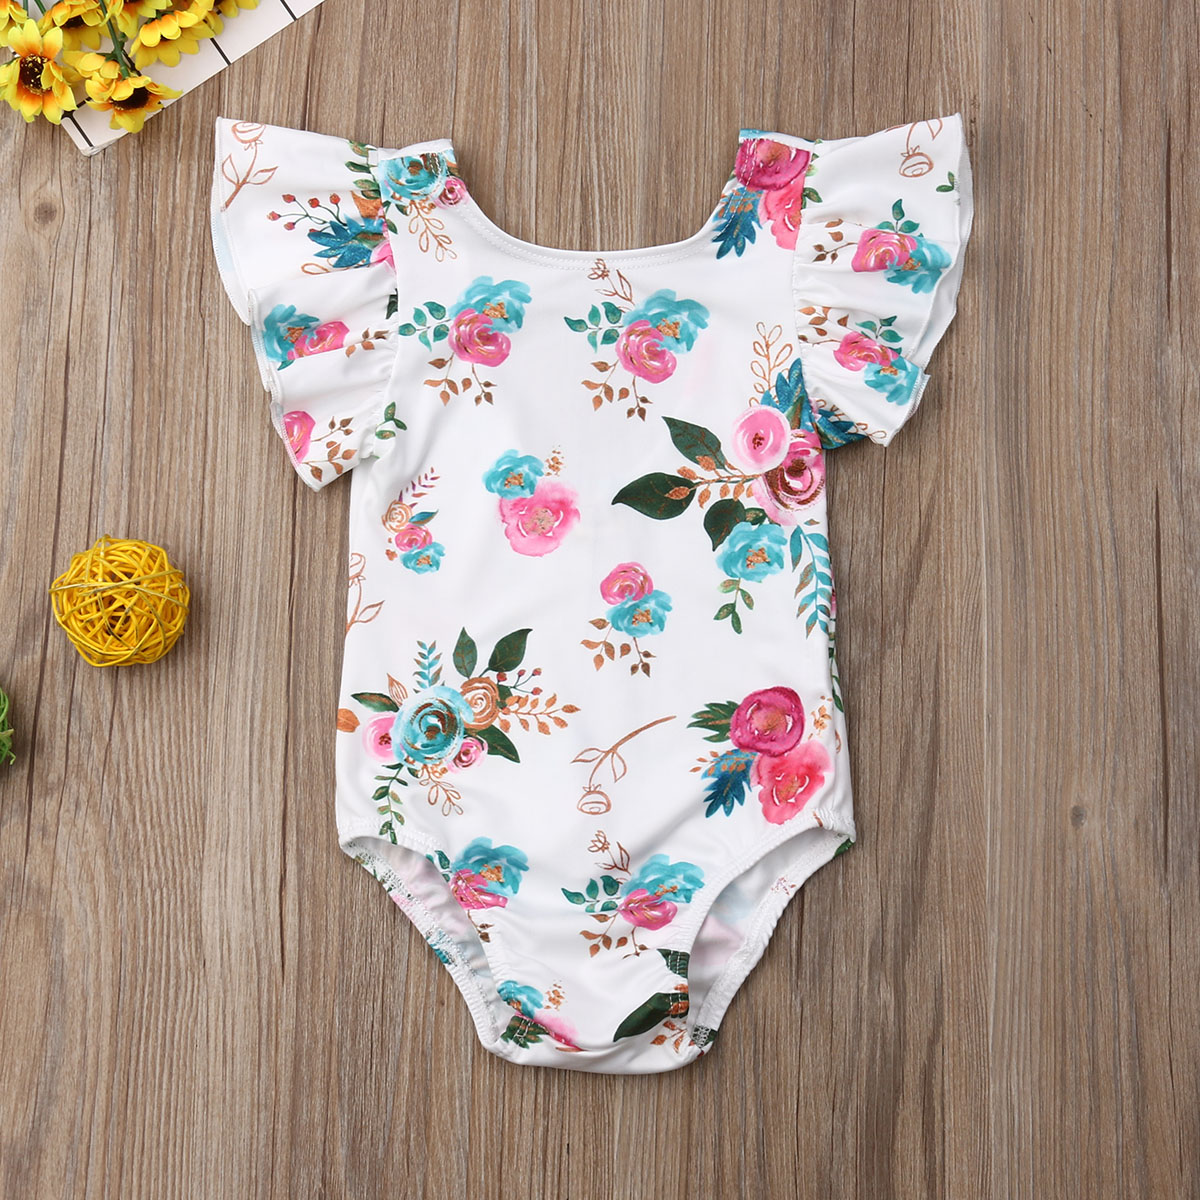 Pudcoco Newborn Baby Girl Clothes Fly Sleeve Ruffle Flower Print Romper Jumpsuit One-Piece Outfit Playsuit